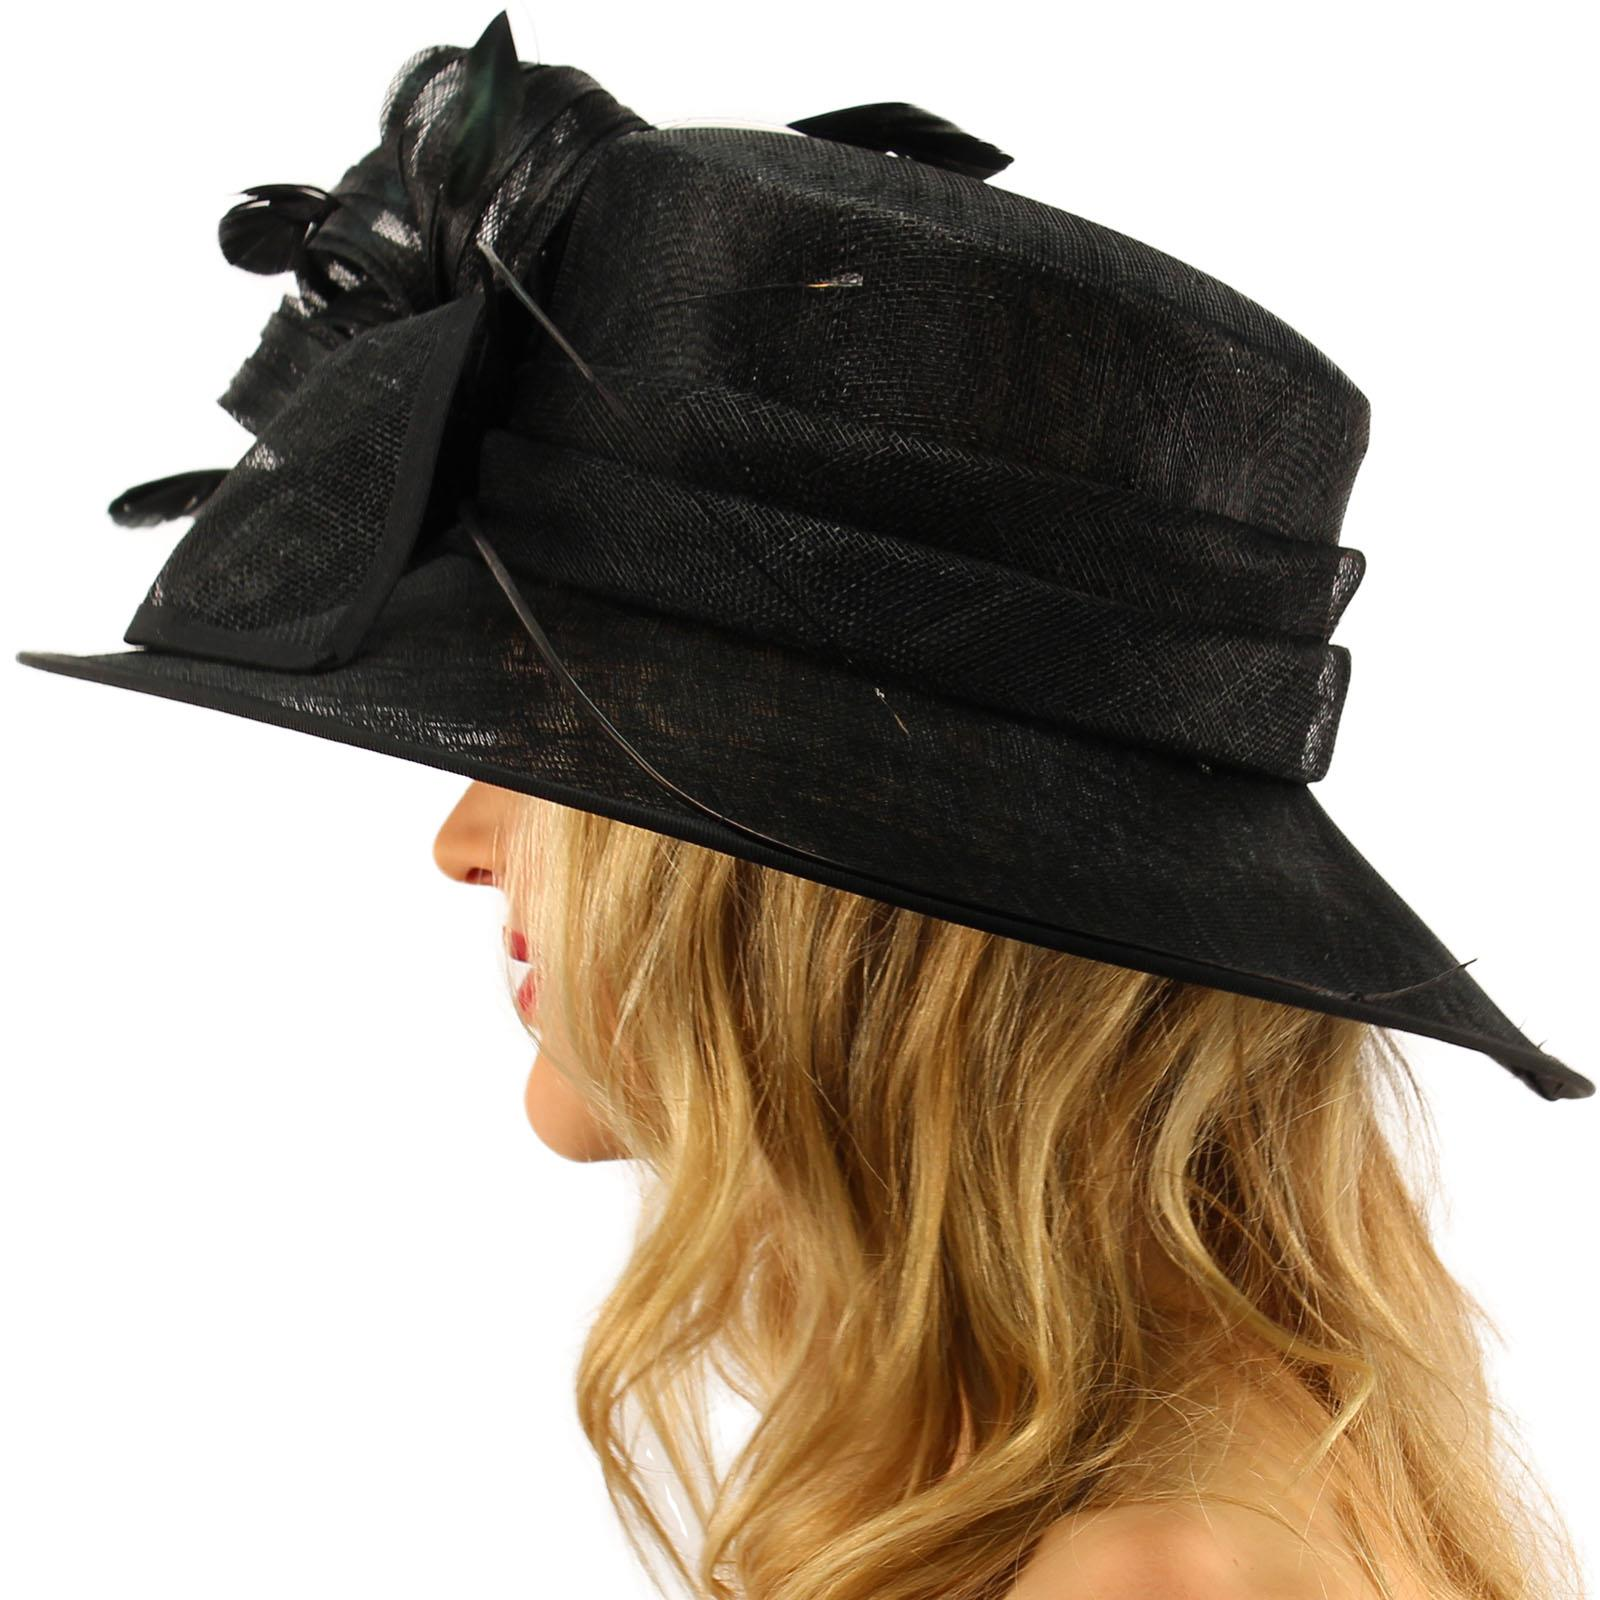 British Regal Sinamy Ribbon Feathers Quill Derby Floppy Bucket Dressy Hat